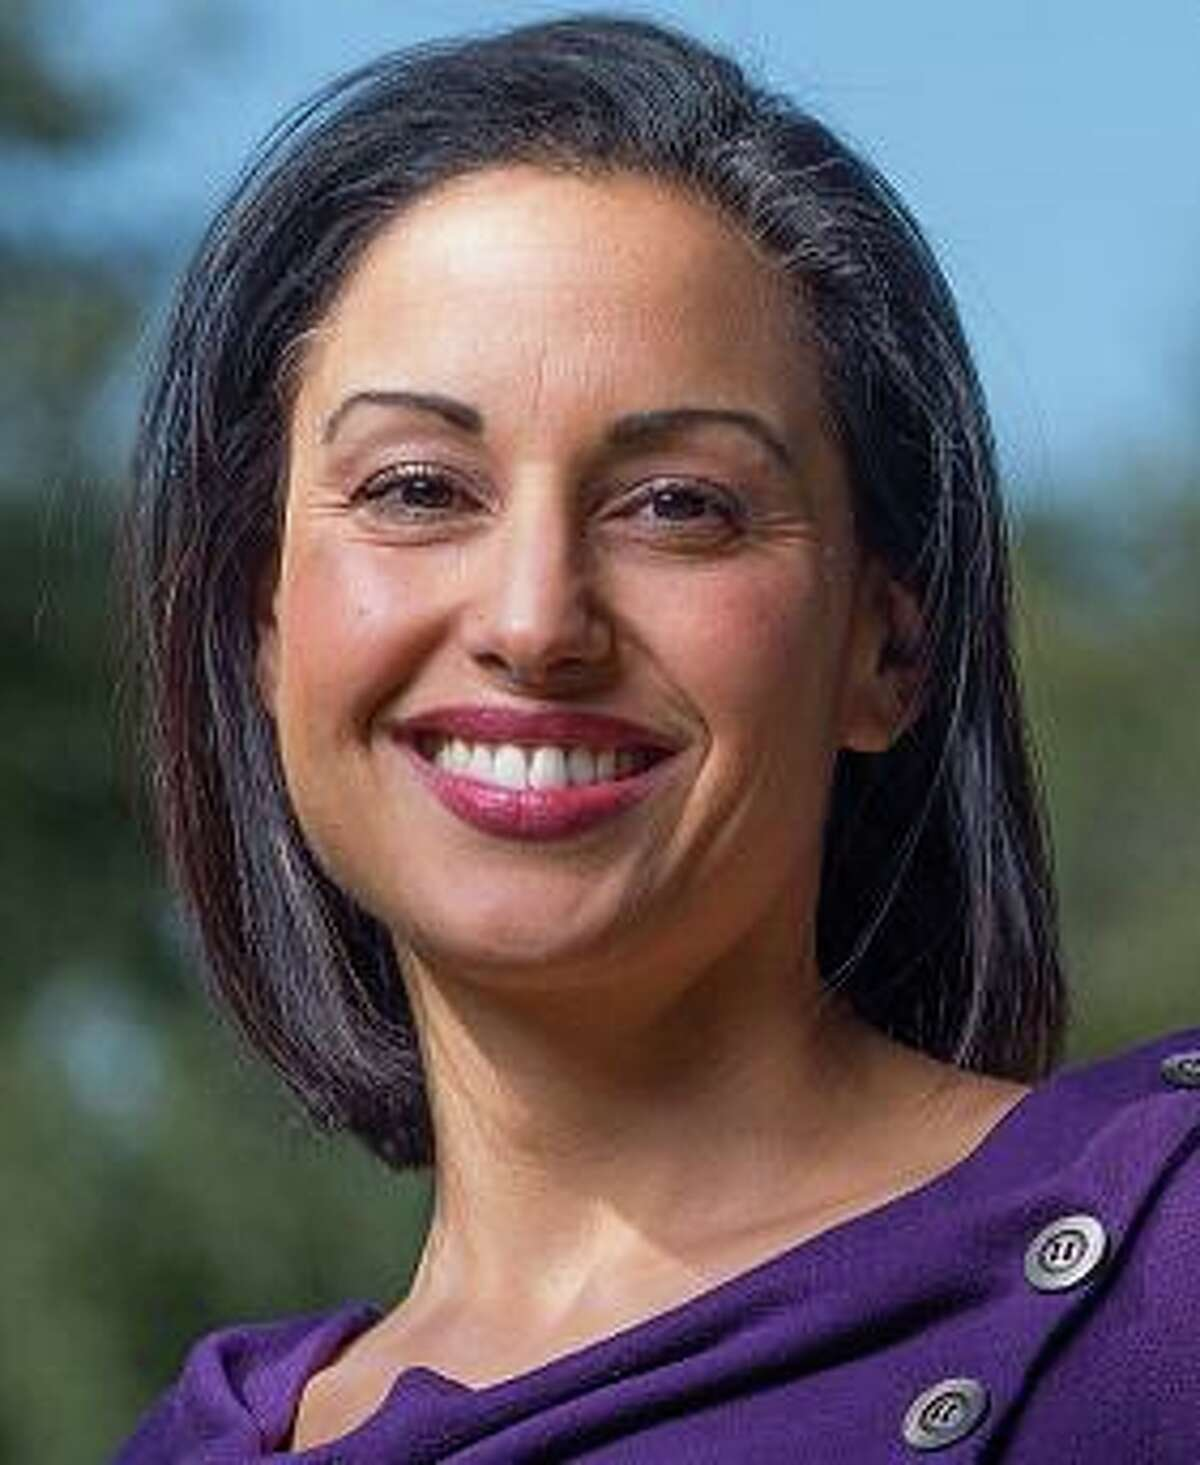 Jessica Garcia Shafer, 38, an epidemiologist at NASA, is running for Pearland ISD Position 2. She is running against Dr. Kris Schoeffler, Edgar Pacheco and Carmine Petrillo III.